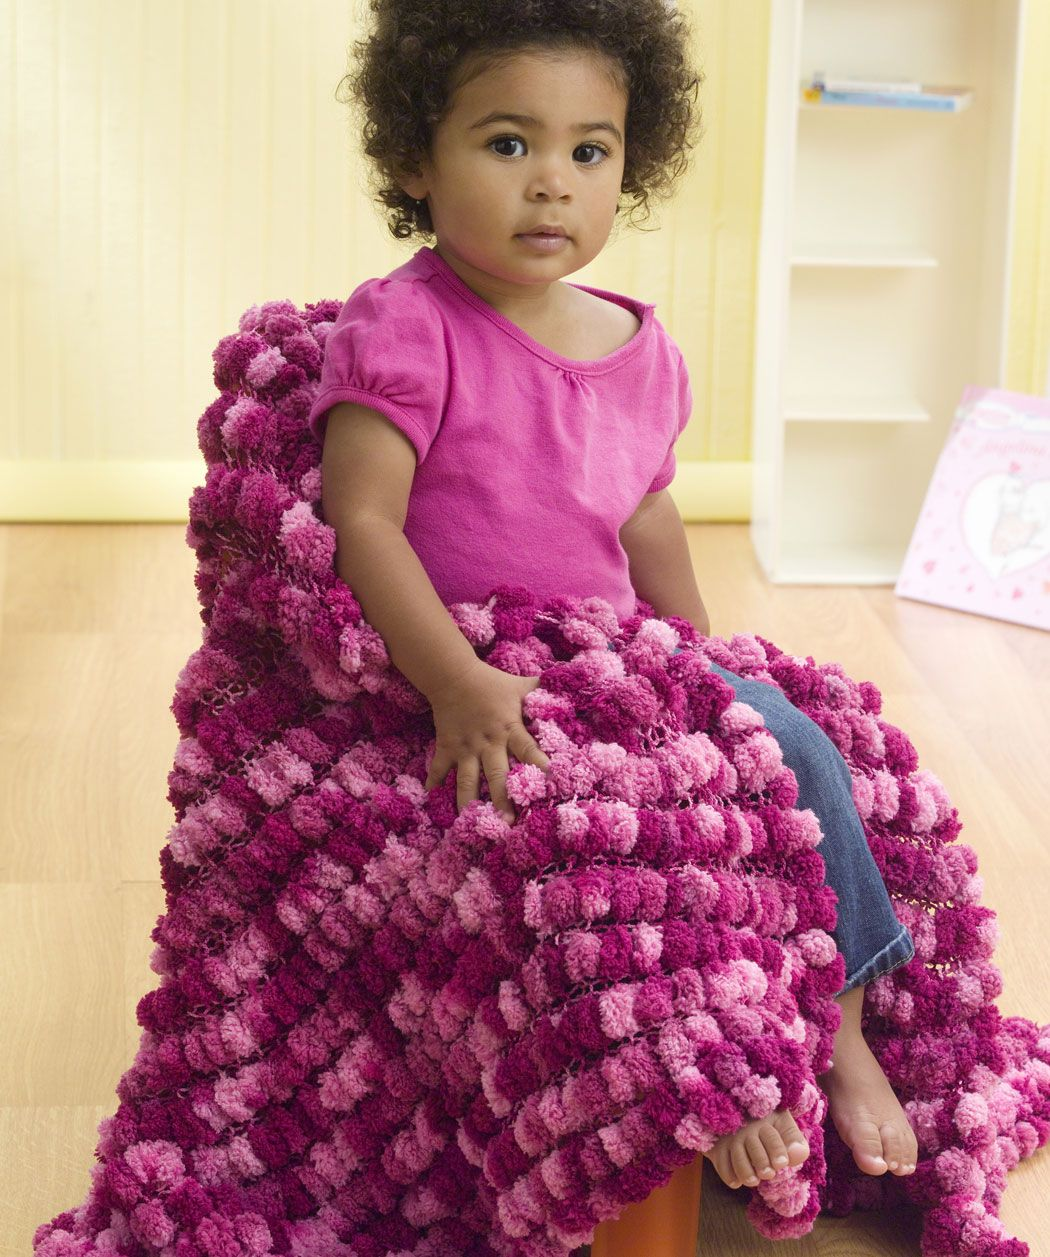 FREE - Knitting pattern for Pampered Baby Blanket. Uses 6 balls of ...